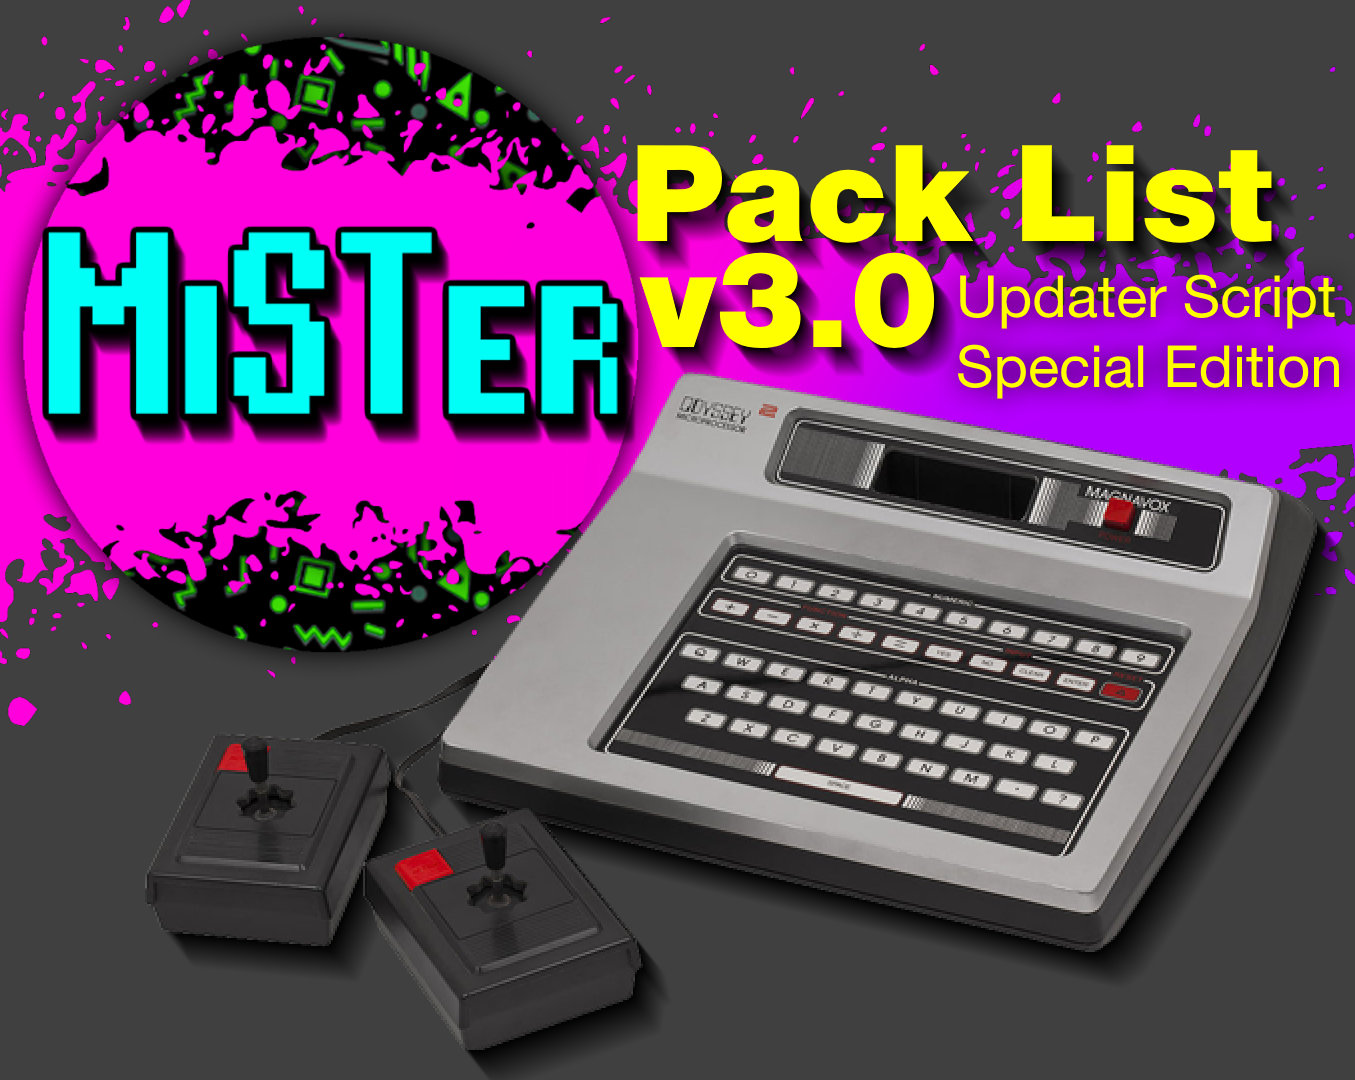 MiSTer Pack List v3 0 Released – Updater Script Special